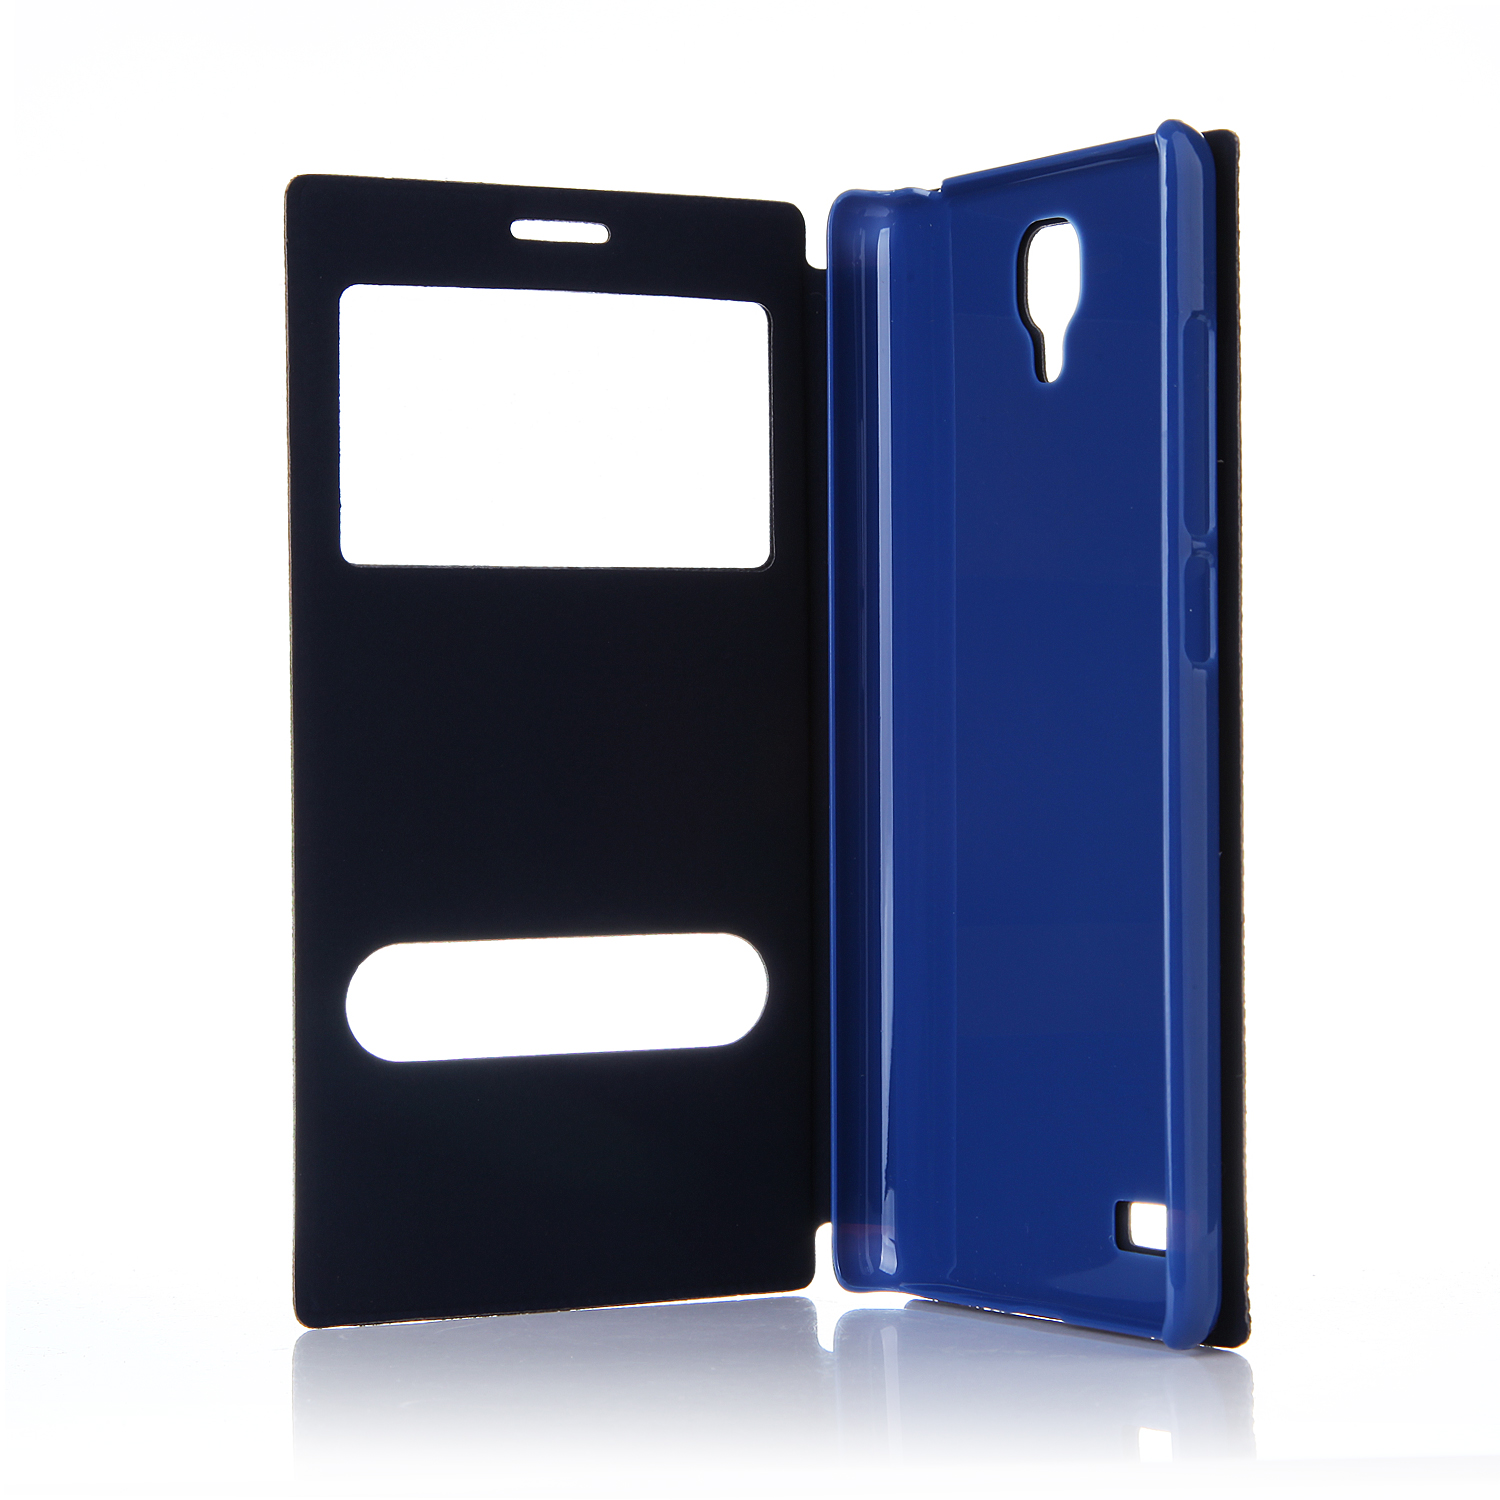 Leather Flip Cover Case Stand Case for XIAOMI Redmi Note Smartphone Dark Blue